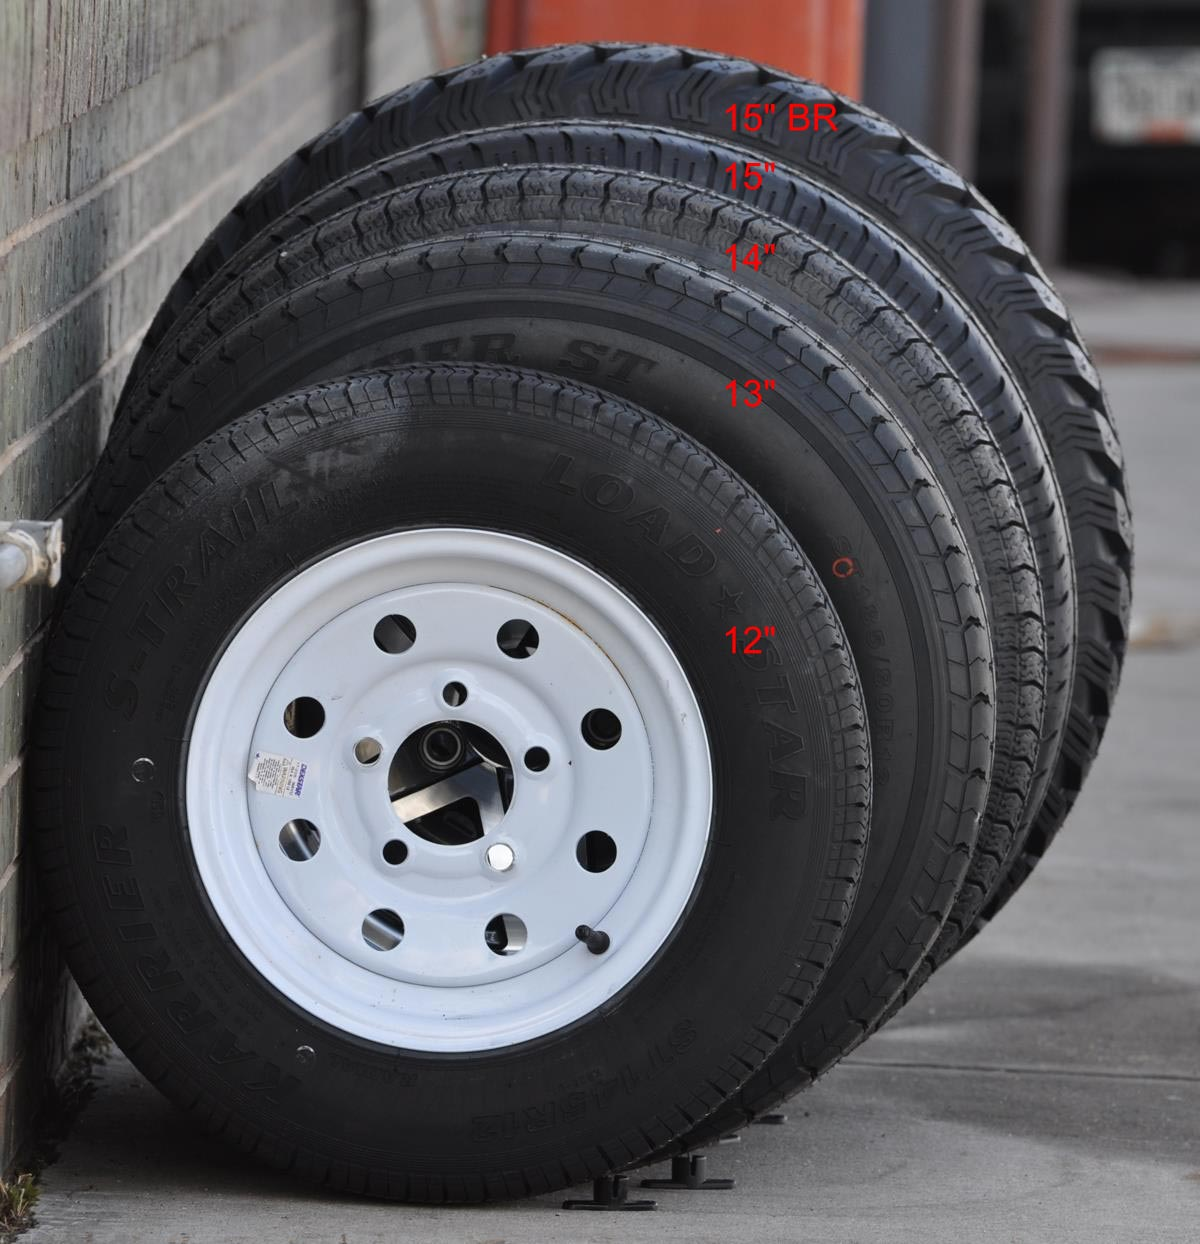 Nissan Pathfinder Tire Size Wheels Tires Gallery T